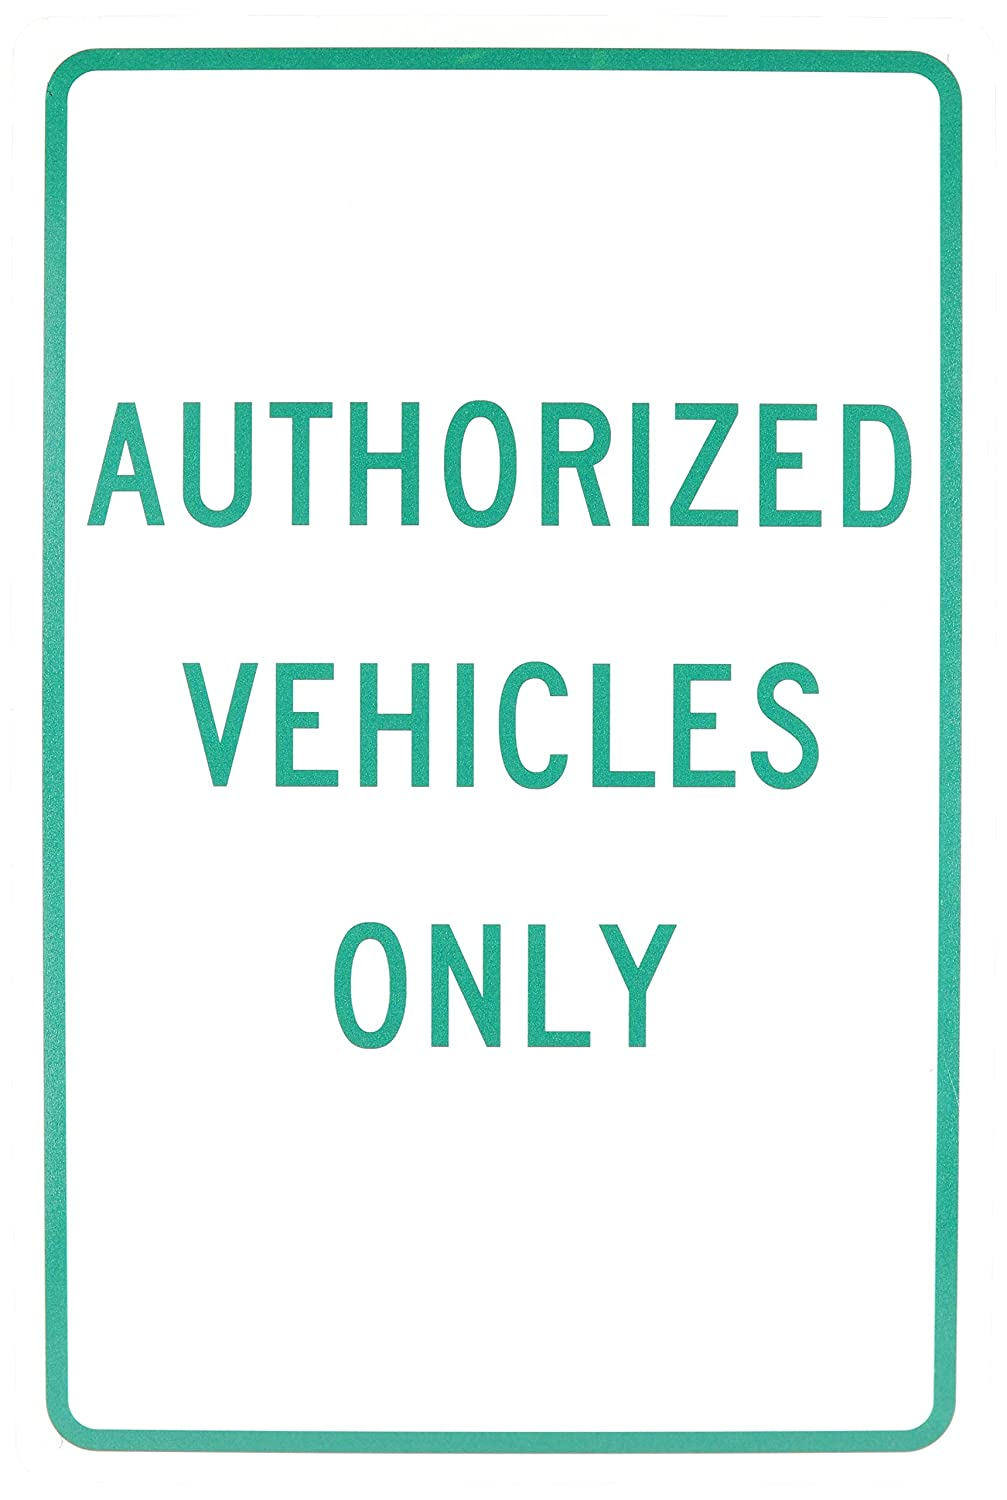 NMC TM48G Traffic Sign 12 Length x 18 Height Green On White Legend AUTHORIZED VEHICLES ONLY 12 Length x 18 Height NMCTM48G 0.040 Aluminum Legend AUTHORIZED VEHICLES ONLY